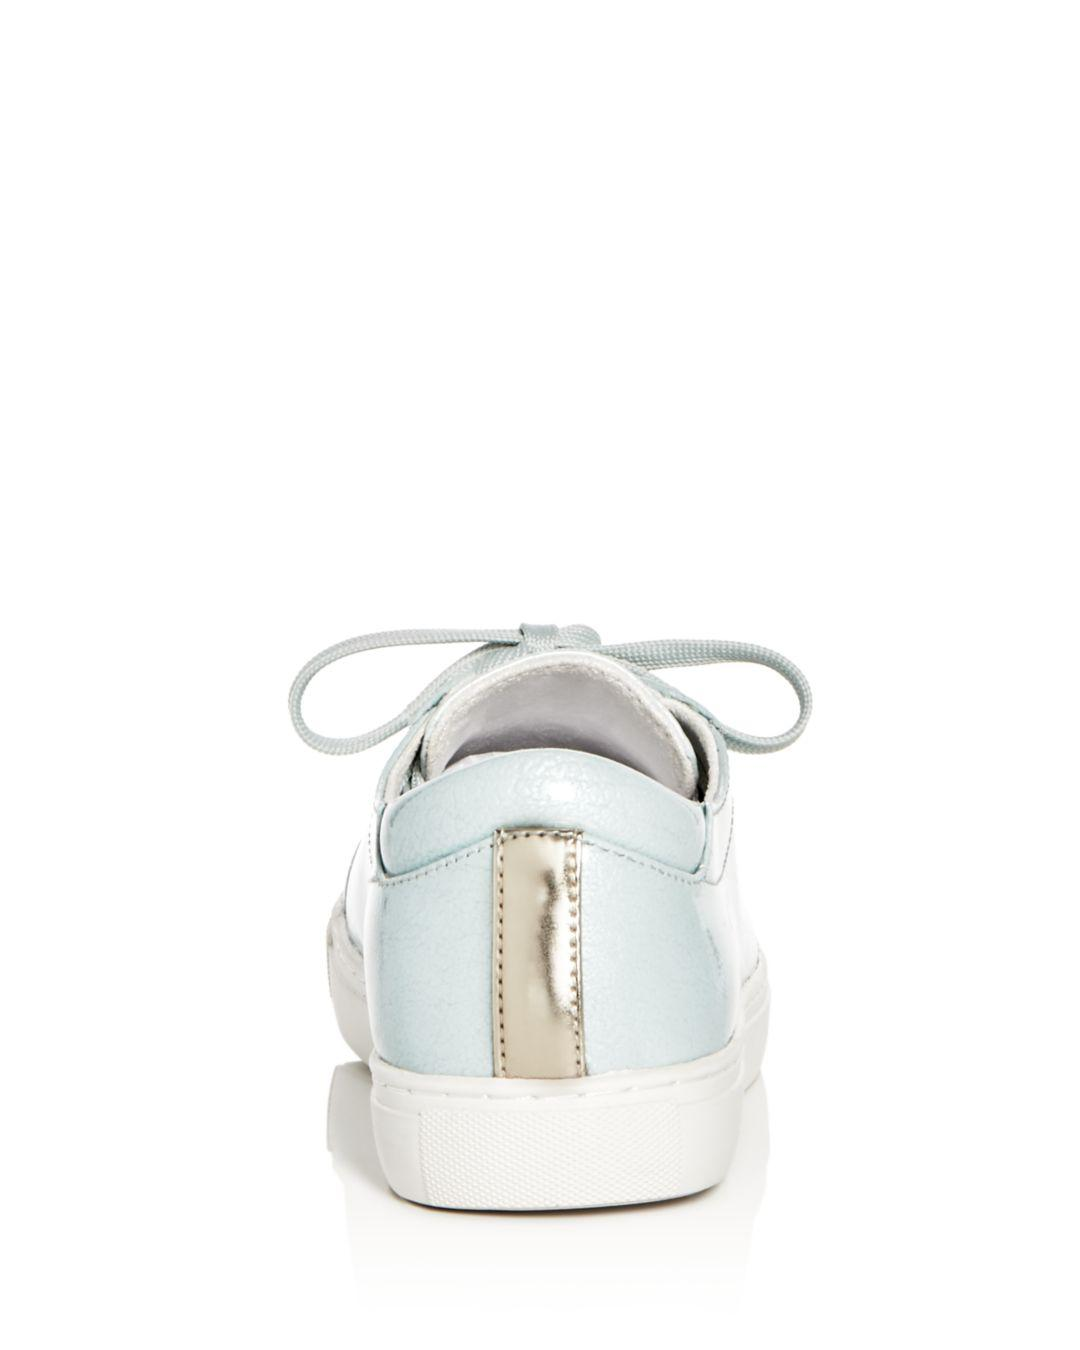 Kenneth Cole Women's Kam Techni-cole Patent Leather Lace Up Sneakers in Mint (White)